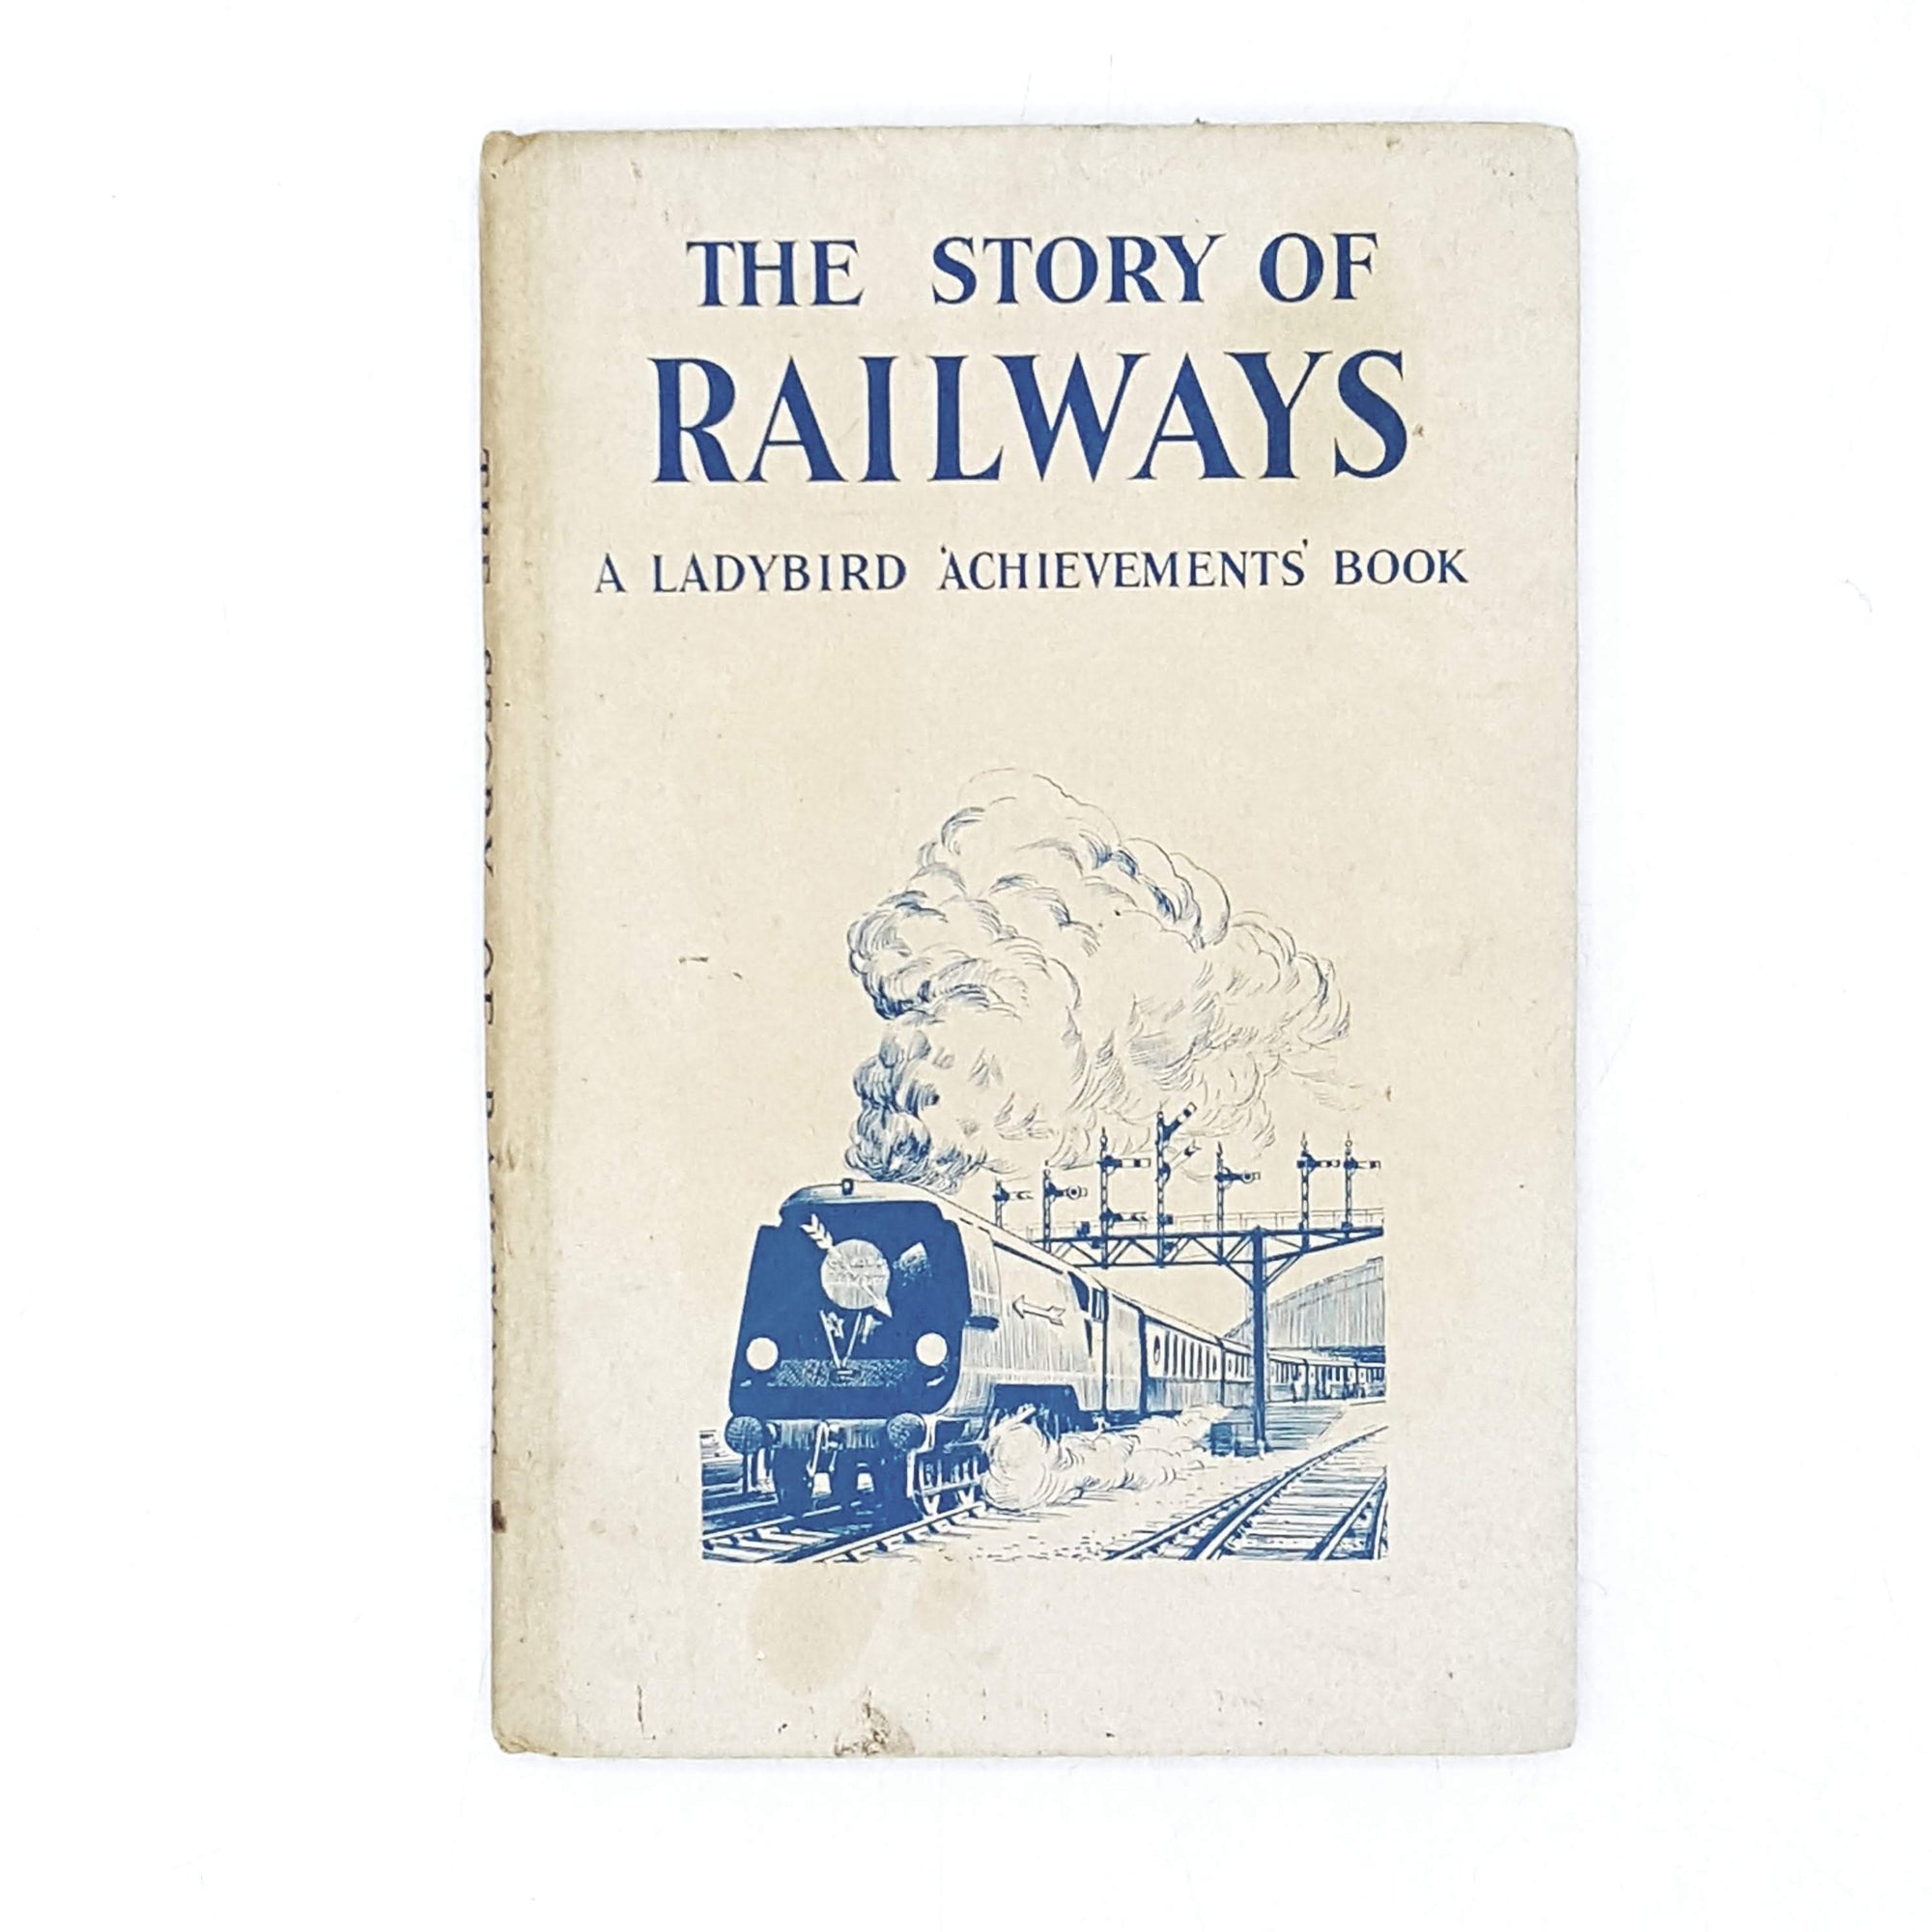 ladybird-achievements-story-railways-kindergarten-books-country-house-library